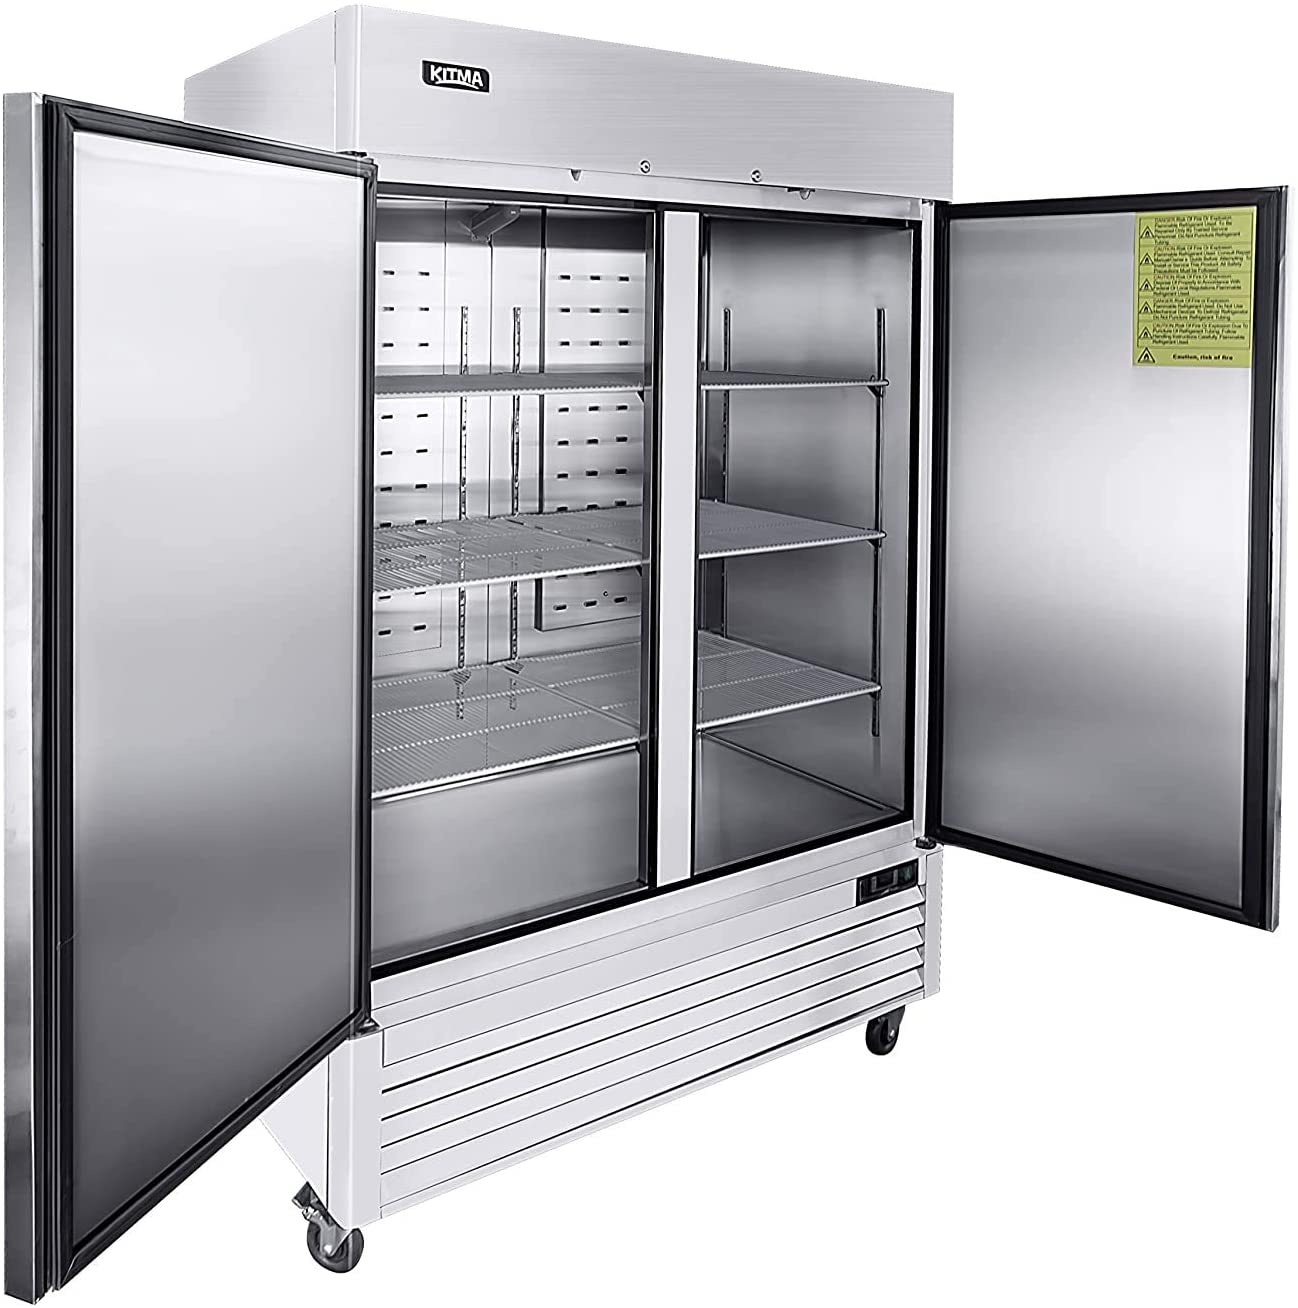 2 Door Commercial Refrigerator, Stainless Steel Upright Refrigerator with 6 Adjustable Shelves, 49 Cu. Ft. Reach-in Reversible Door Fridge for Restaurant Cafe Bar (33℉- 38℉)